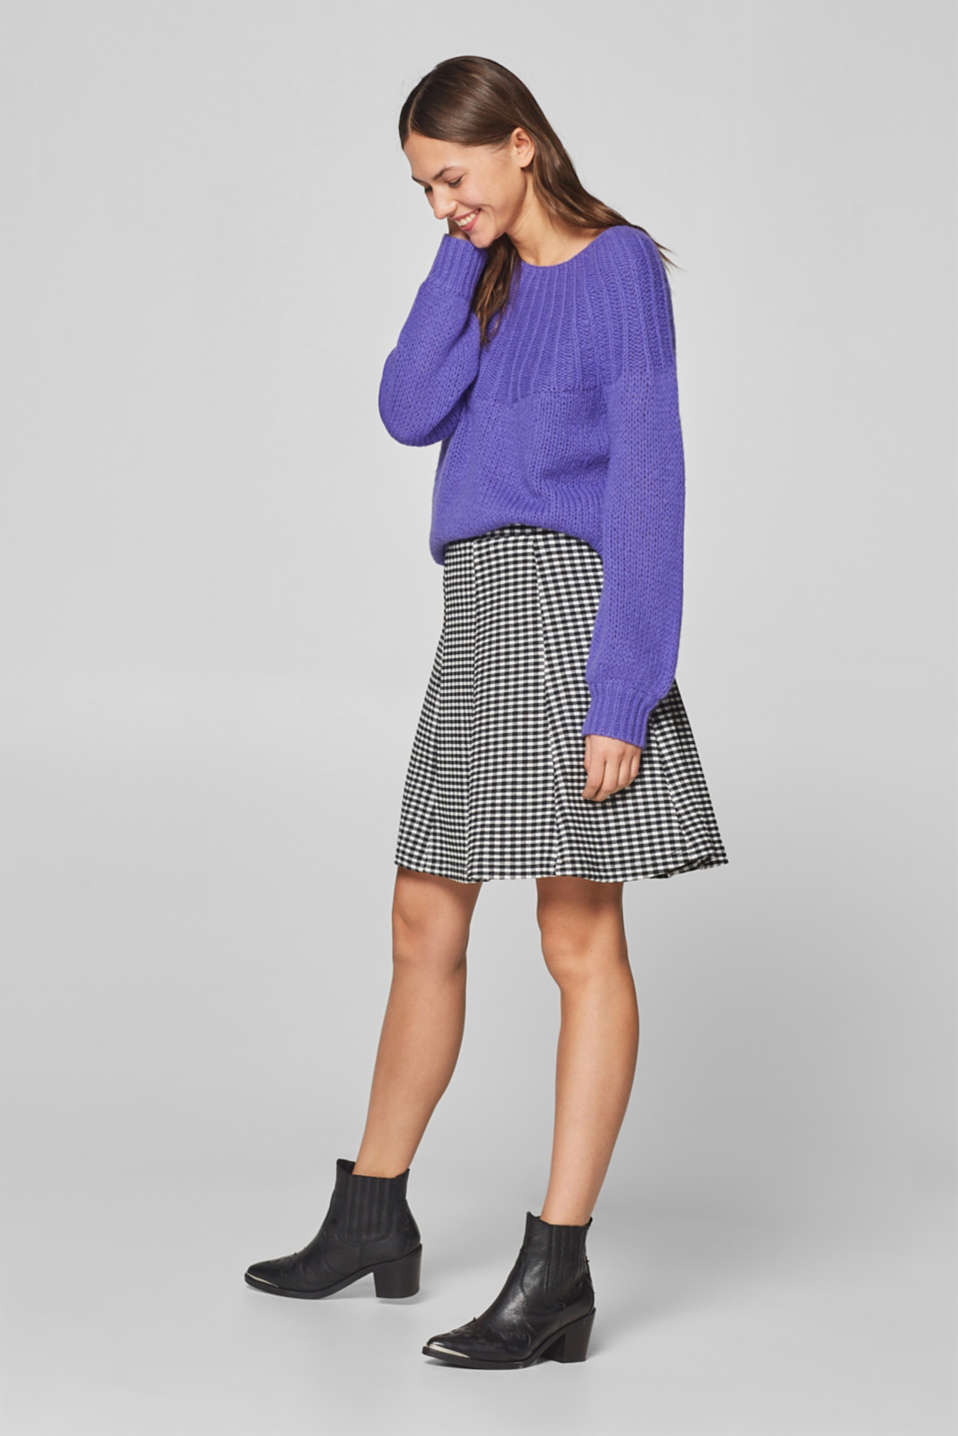 edc - Swirling stretch jersey skirt